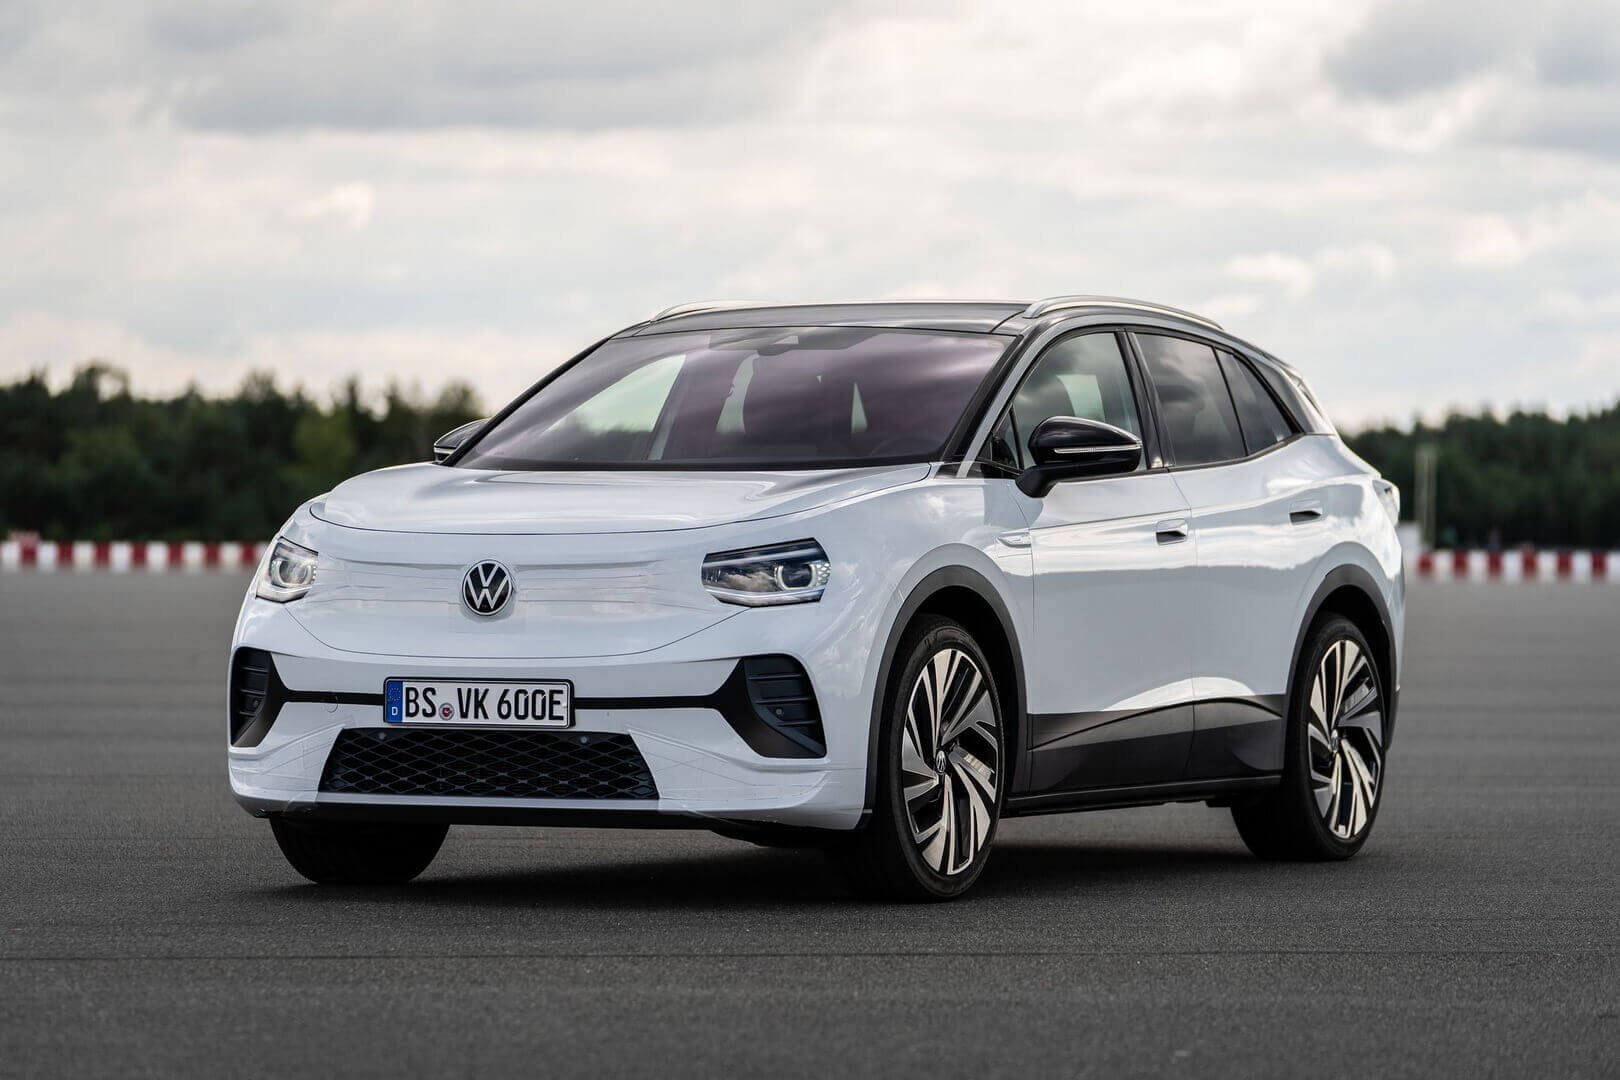 2021 VW ID.4 crossover